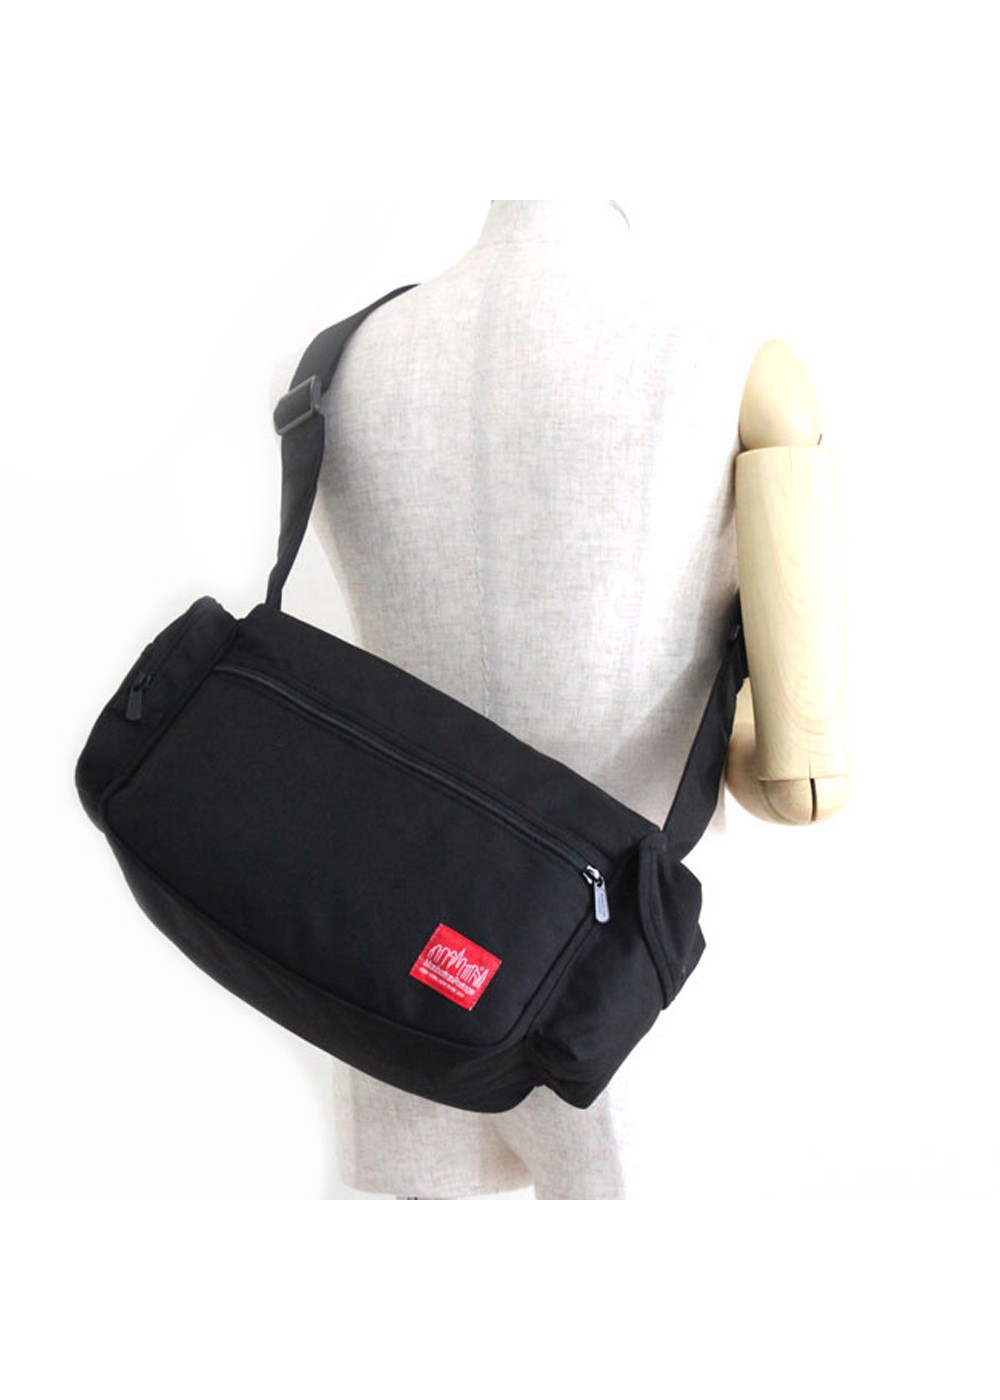 Herald Square Shouler Bag|ネイビー|ショルダーバッグ|Manhattan Portage